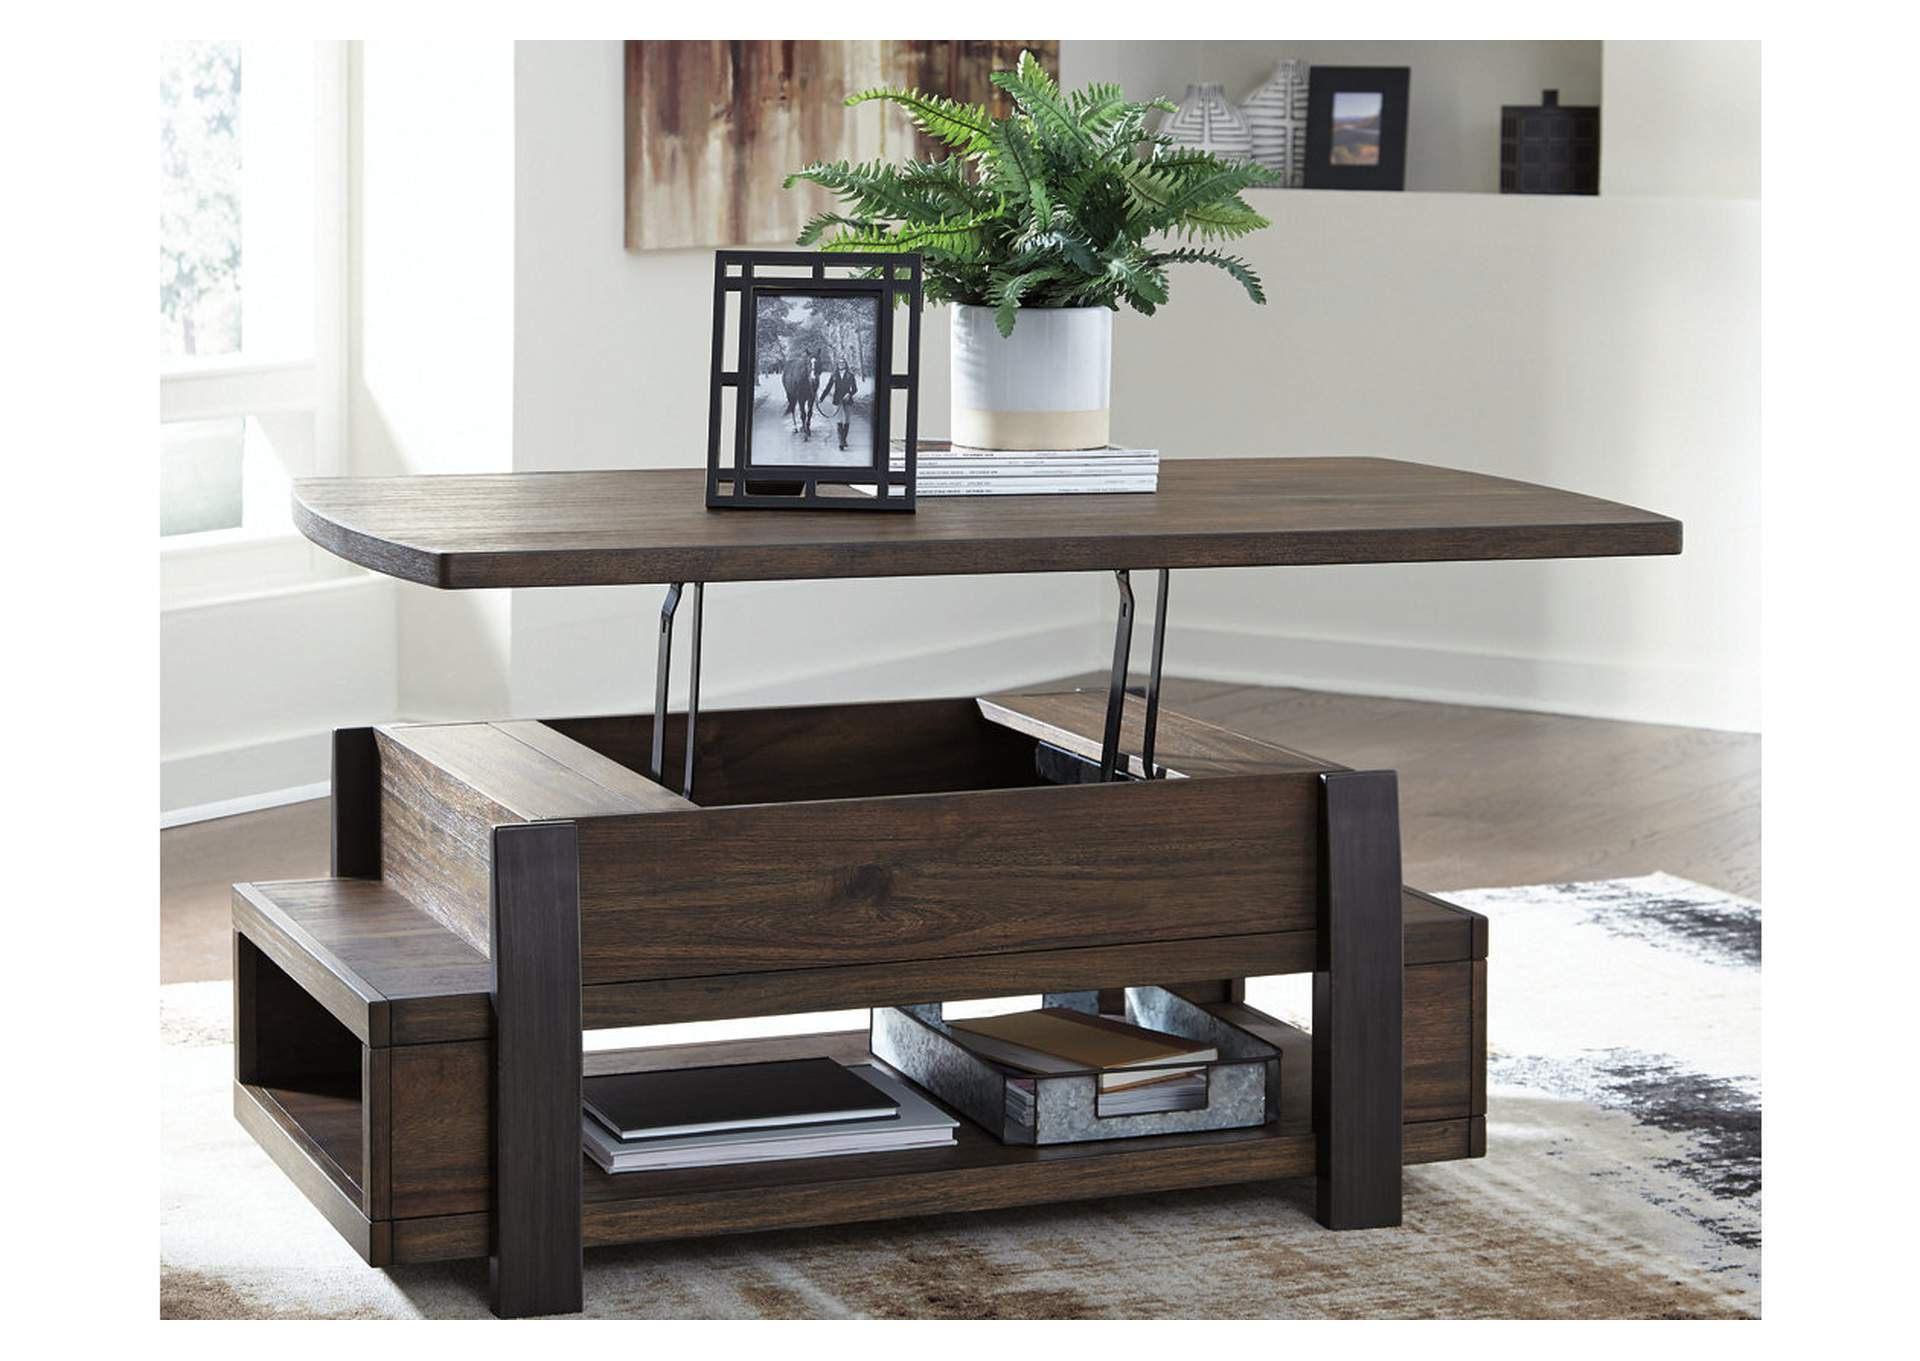 Vailbry Brown Lift-Top Cocktail Table,Signature Design By Ashley